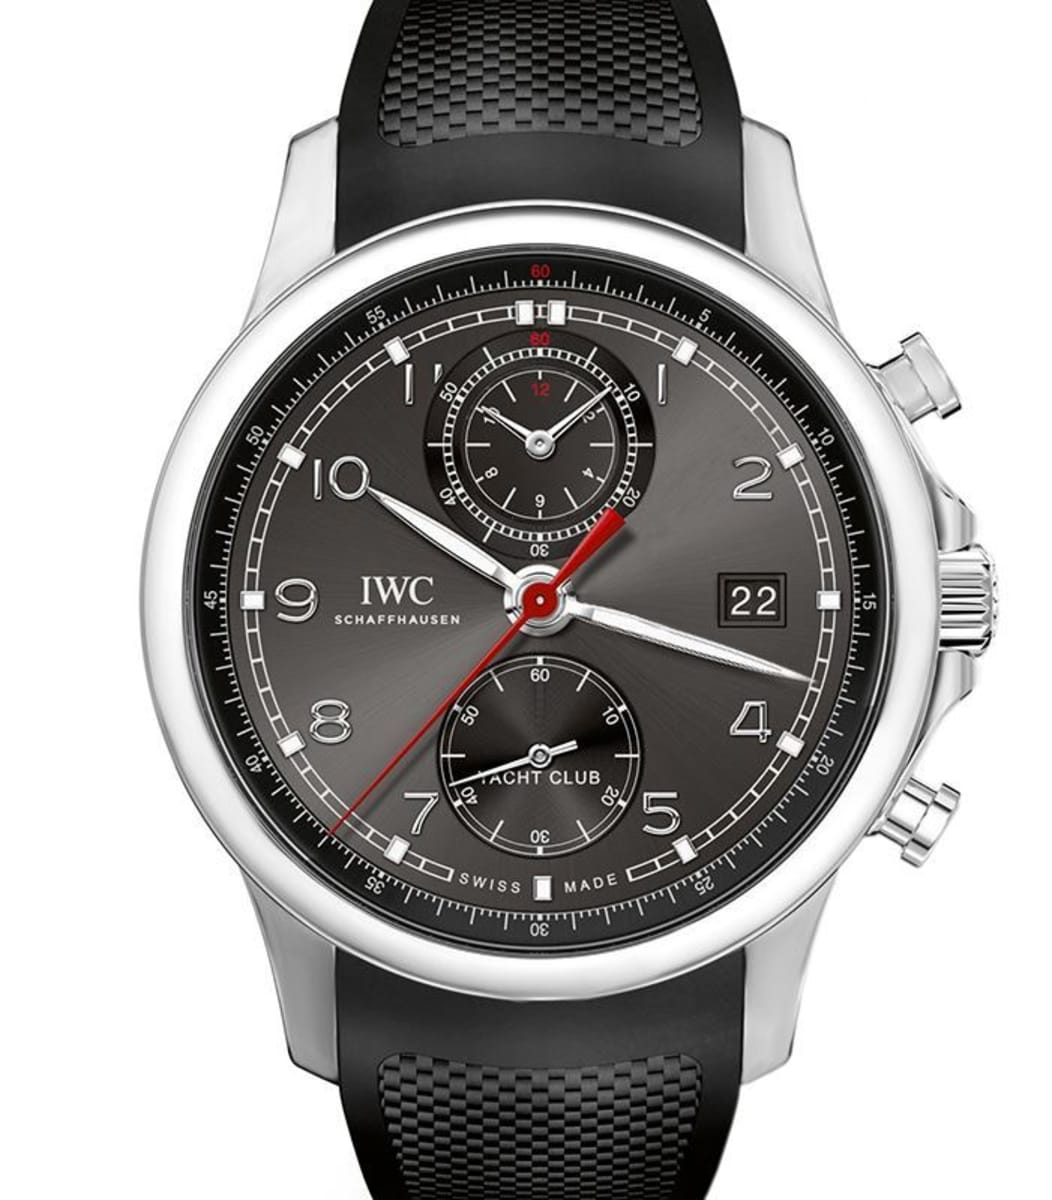 sale retailer e14f9 0156e IWC Portugieser Yacht Club Chronograph Men's Watch IW390503